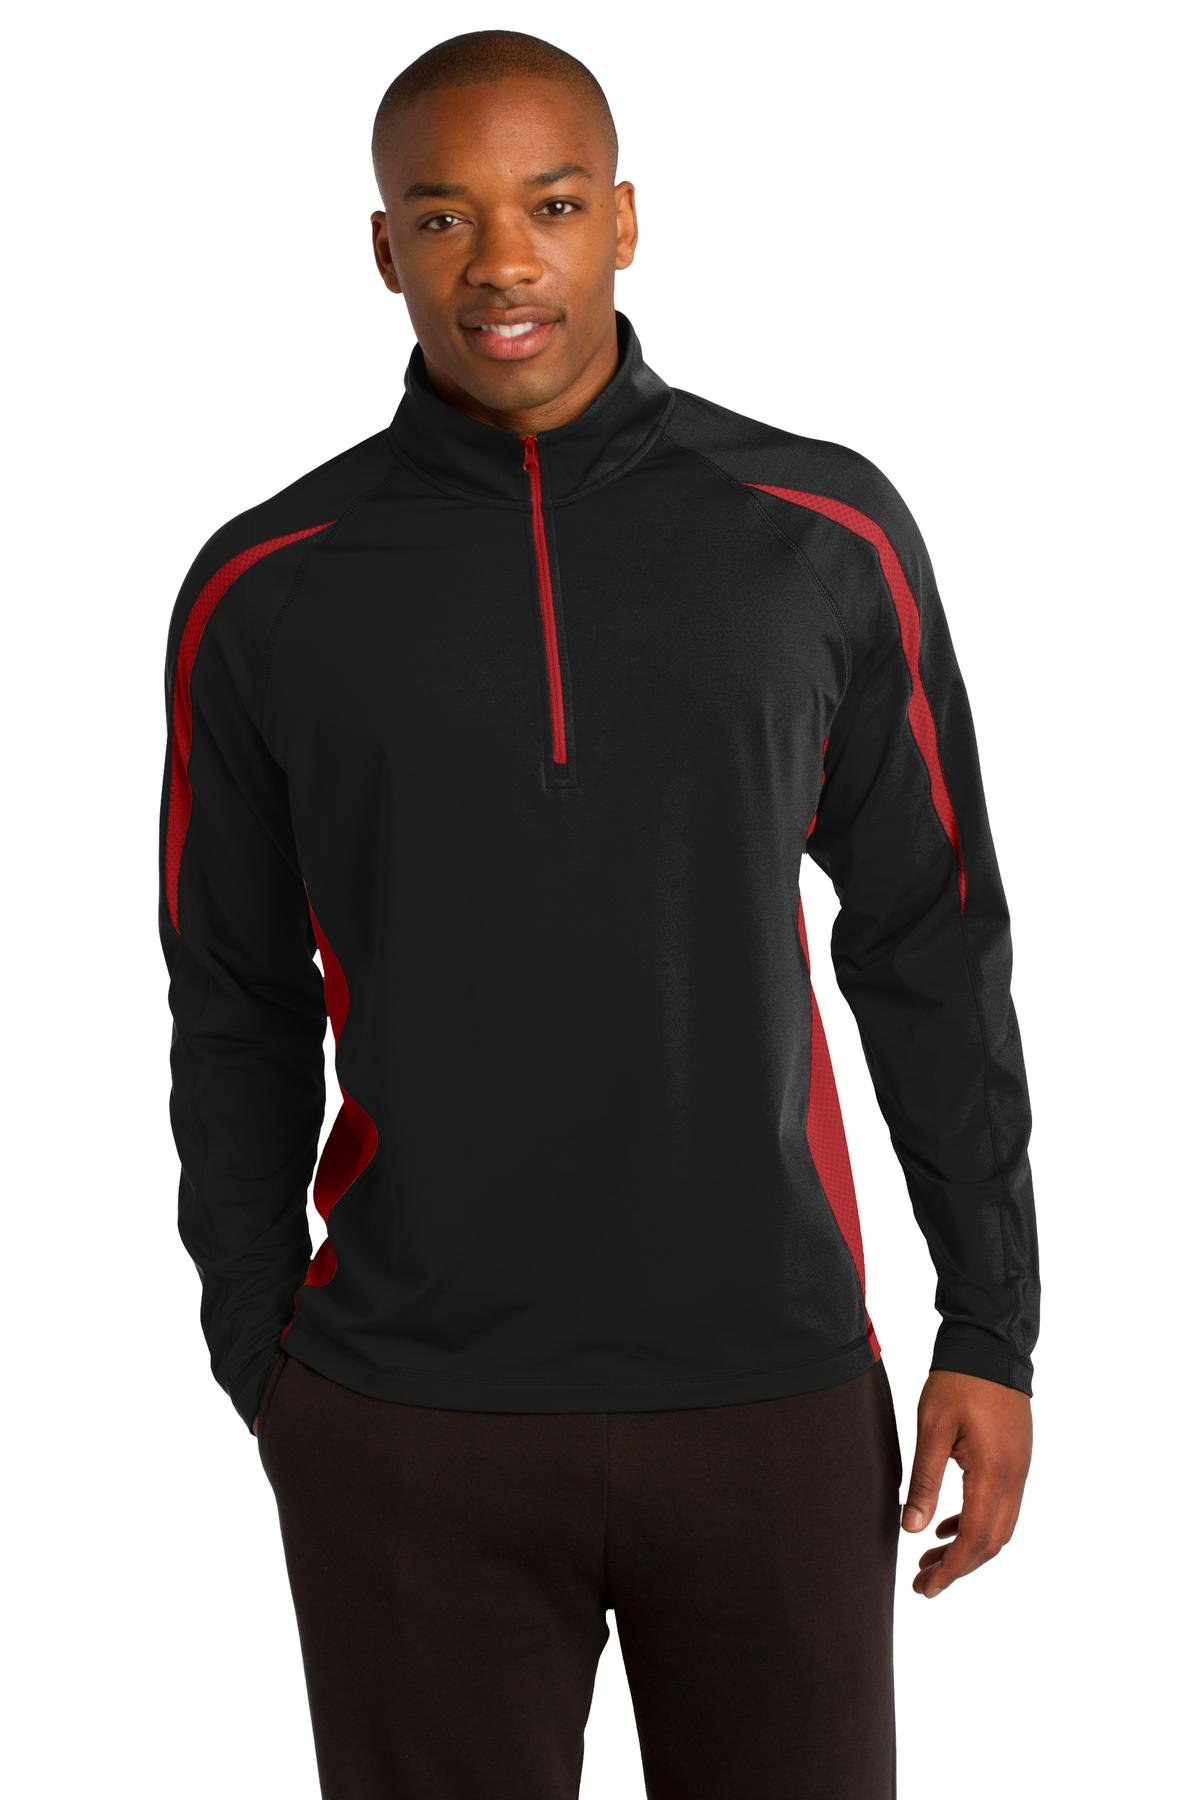 Sport-Tek Men's Sport Wick Stretch 1/2 Zip Colorblock M Black/True Red by Sport-Tek